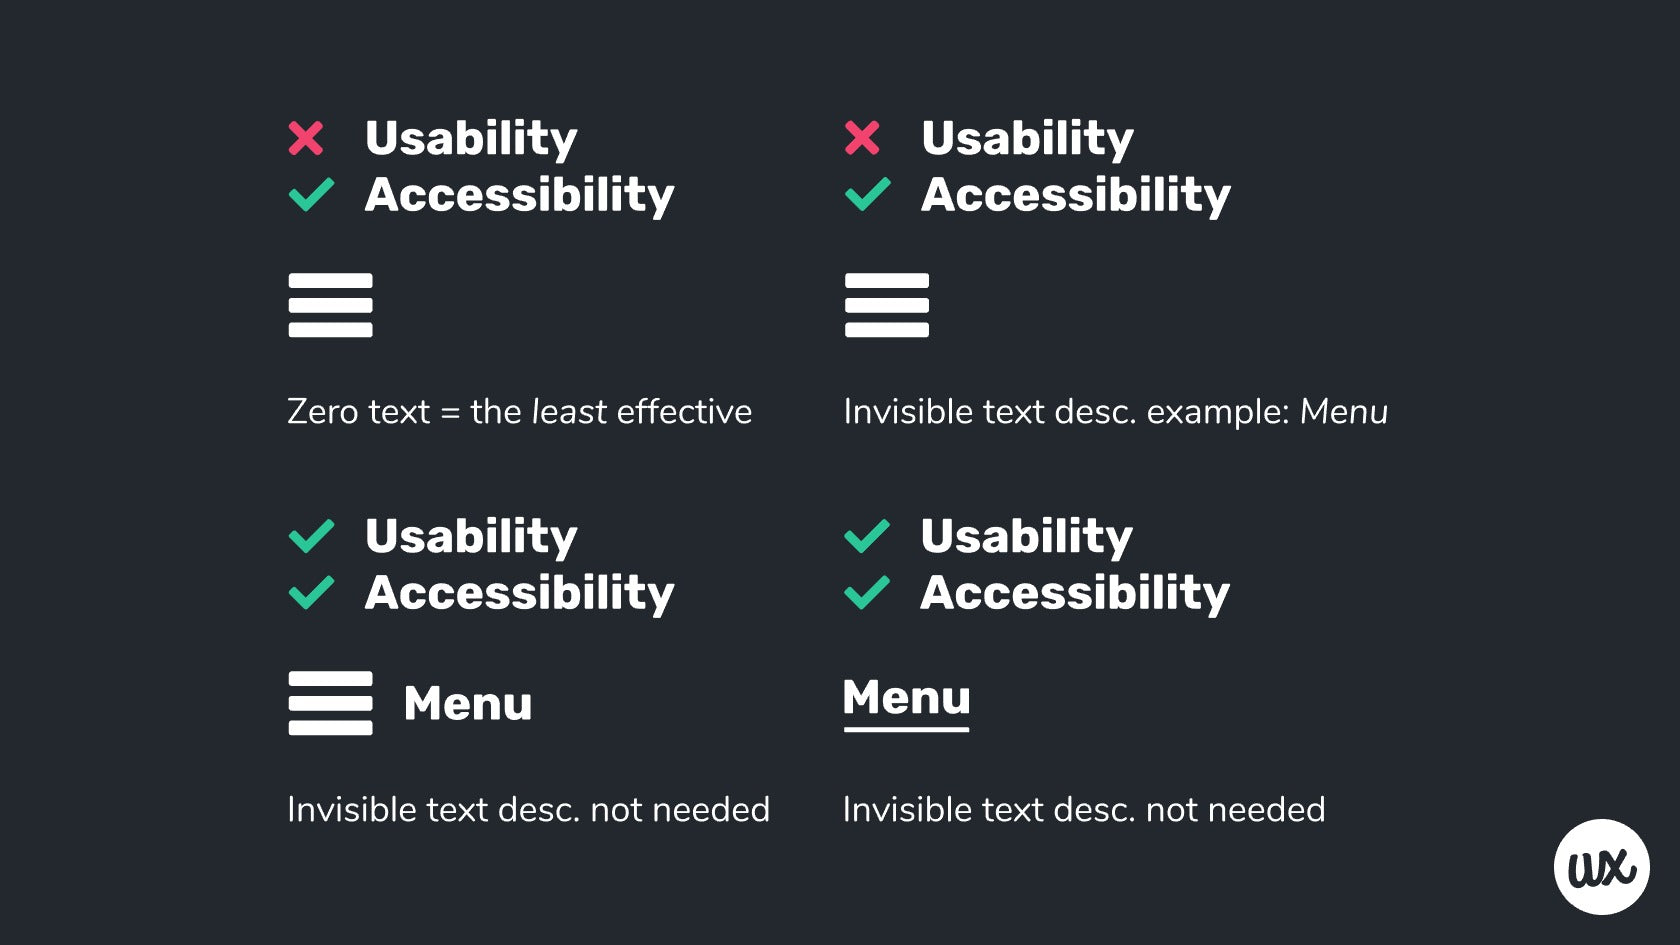 Accessibility for screen readers